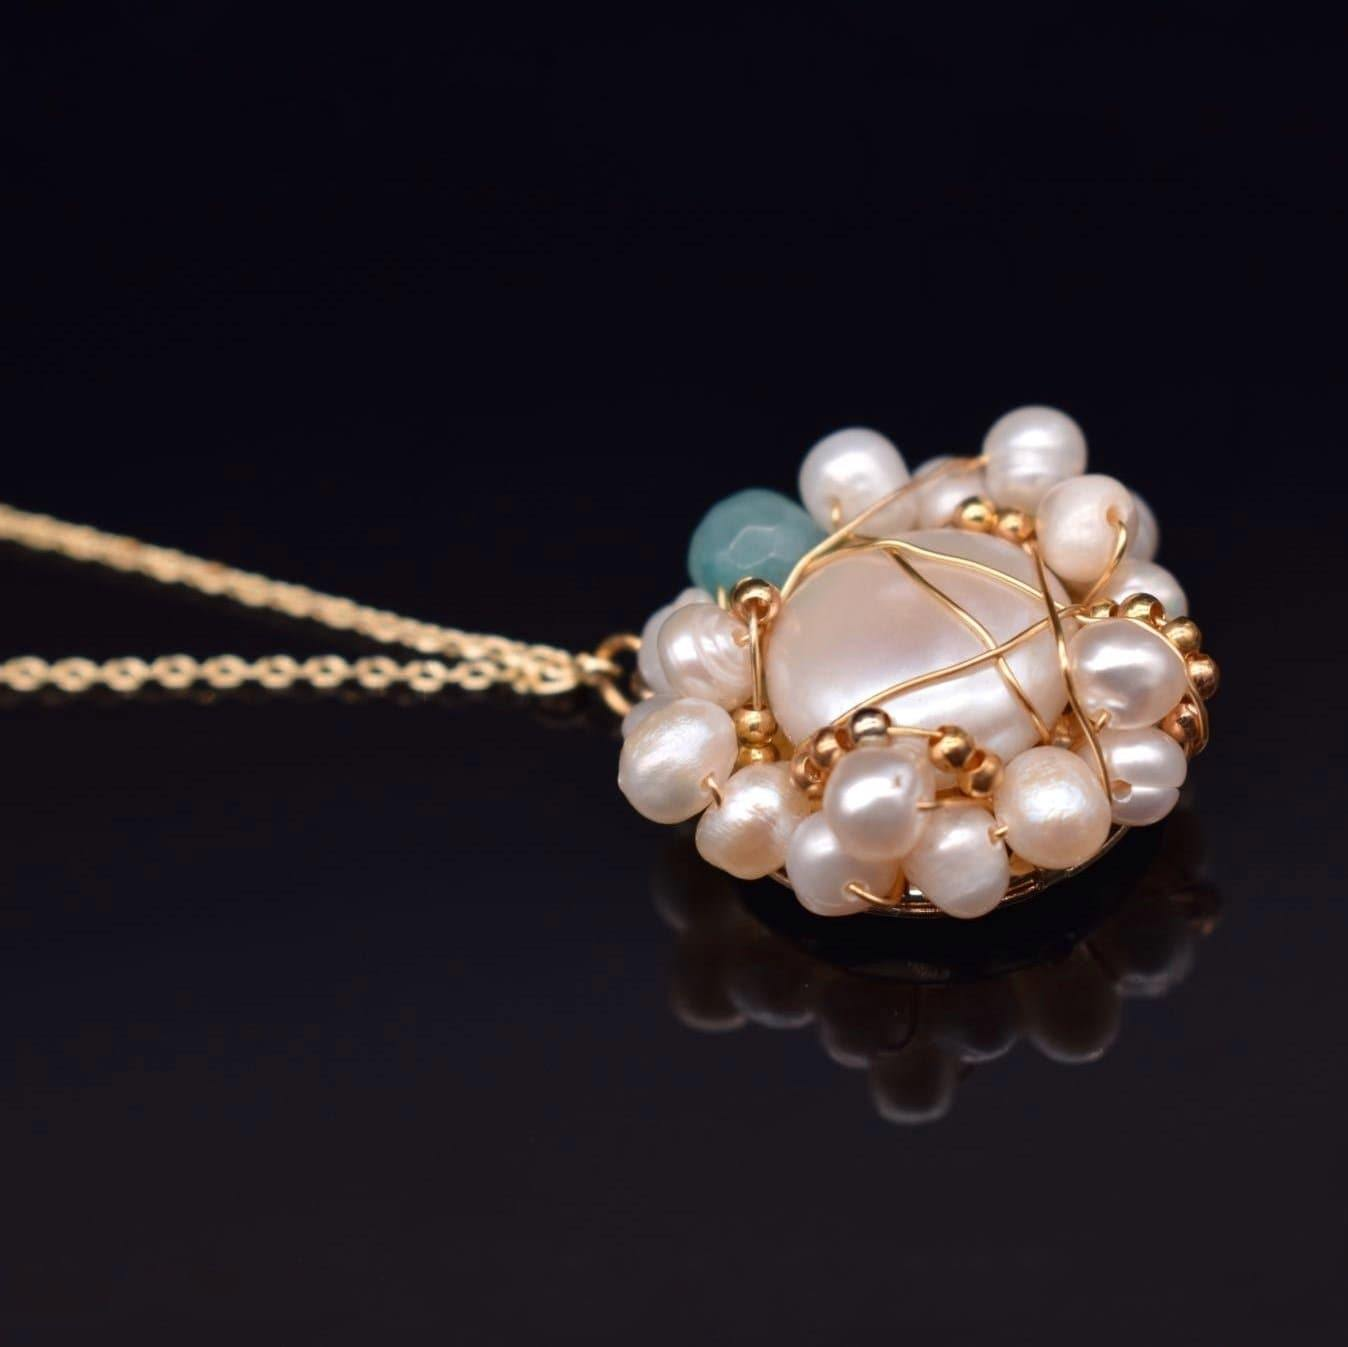 Baroque Pearl Necklace - Masie | Akuna Pearls | Freshwater Pearl Jewellery | Made in Australia